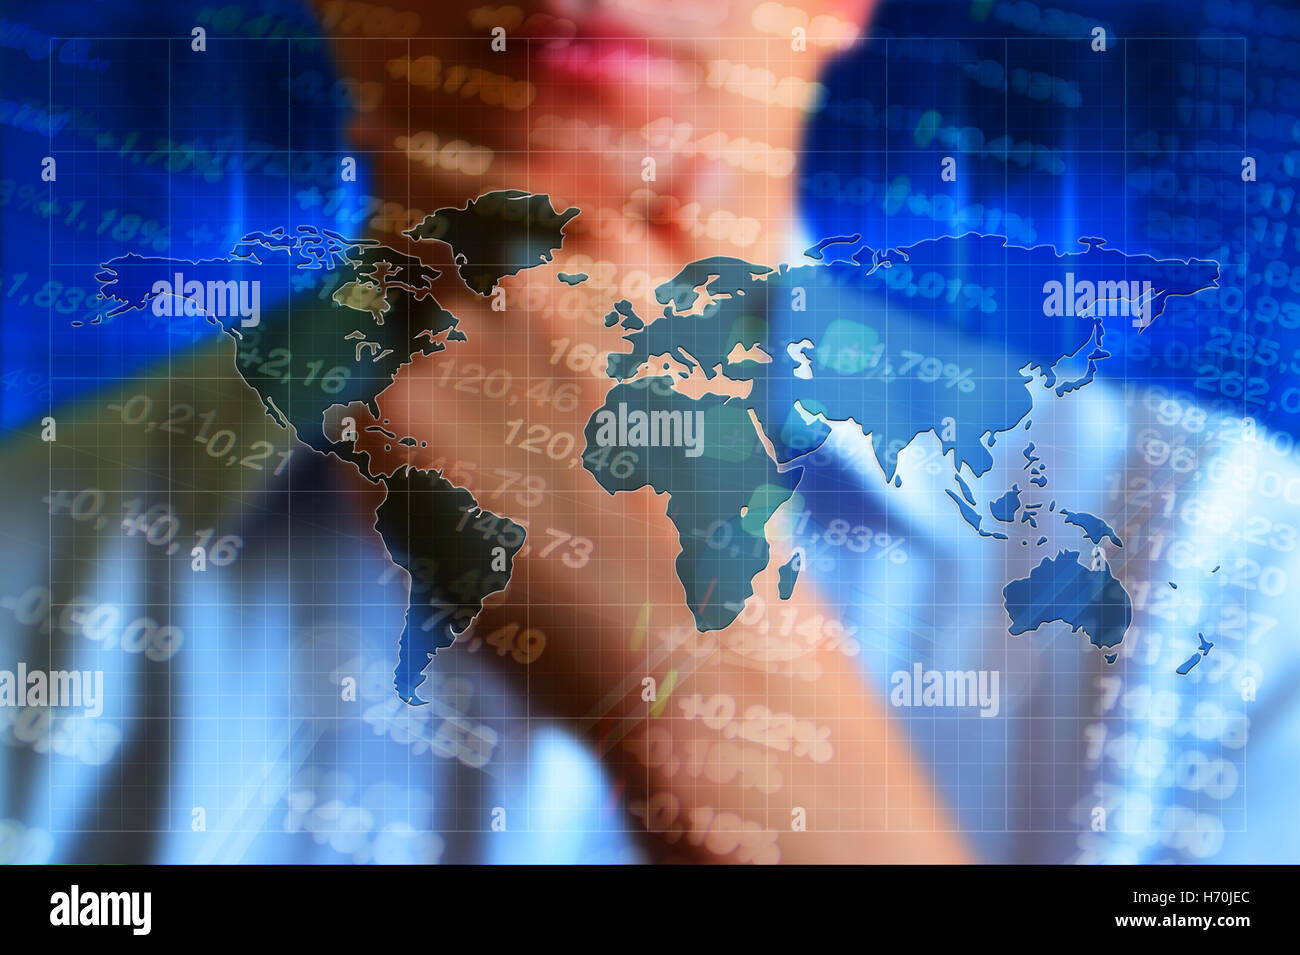 Global economy business concept background - Stock Image